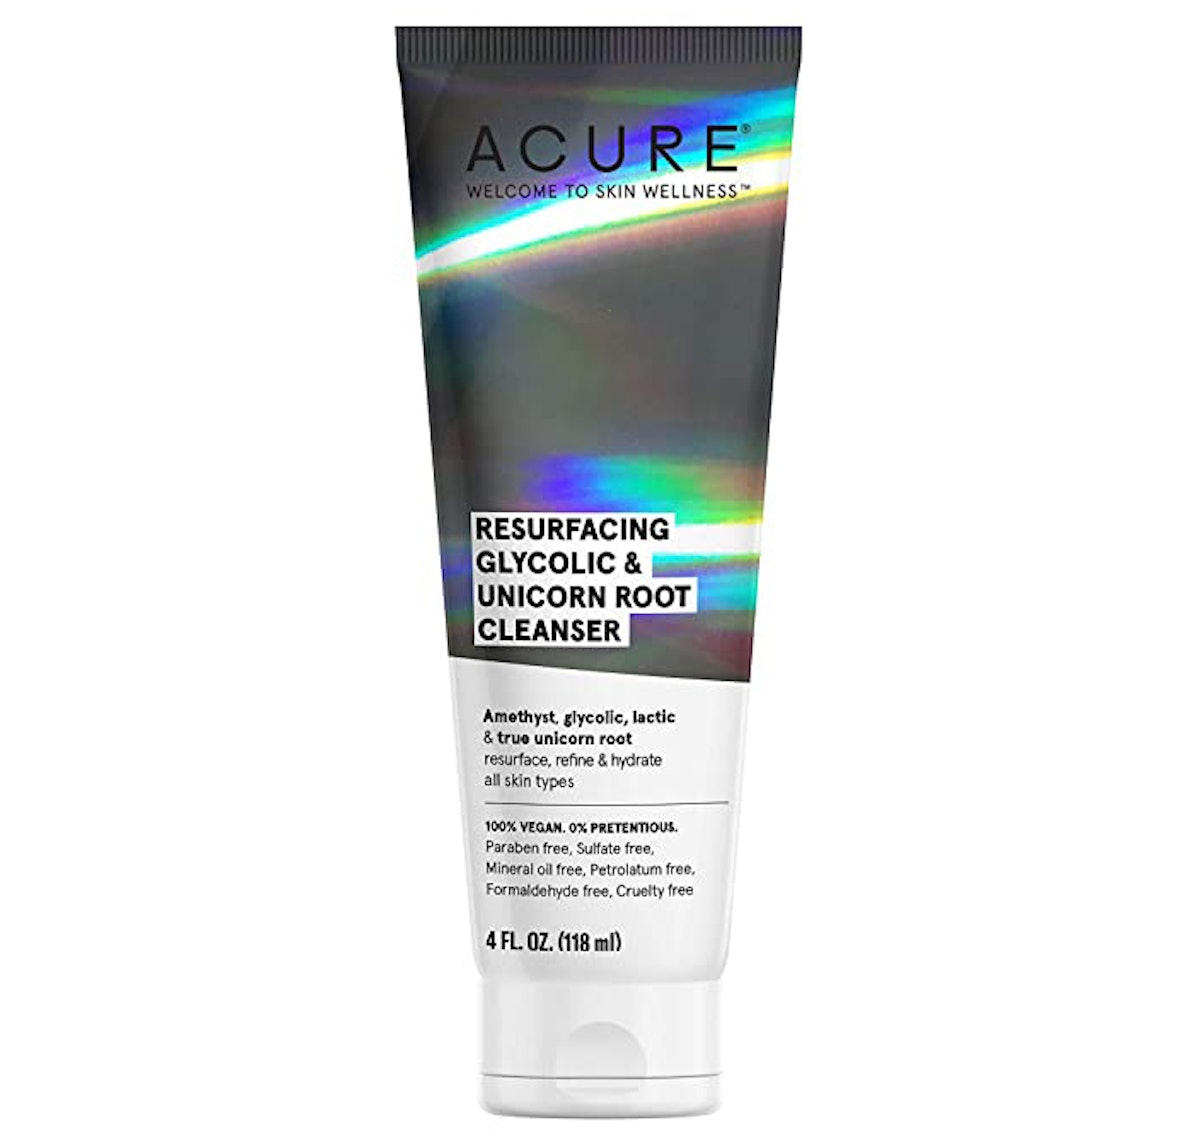 ACURE Resurfacing Glycolic + Unicorn Root Cleanser